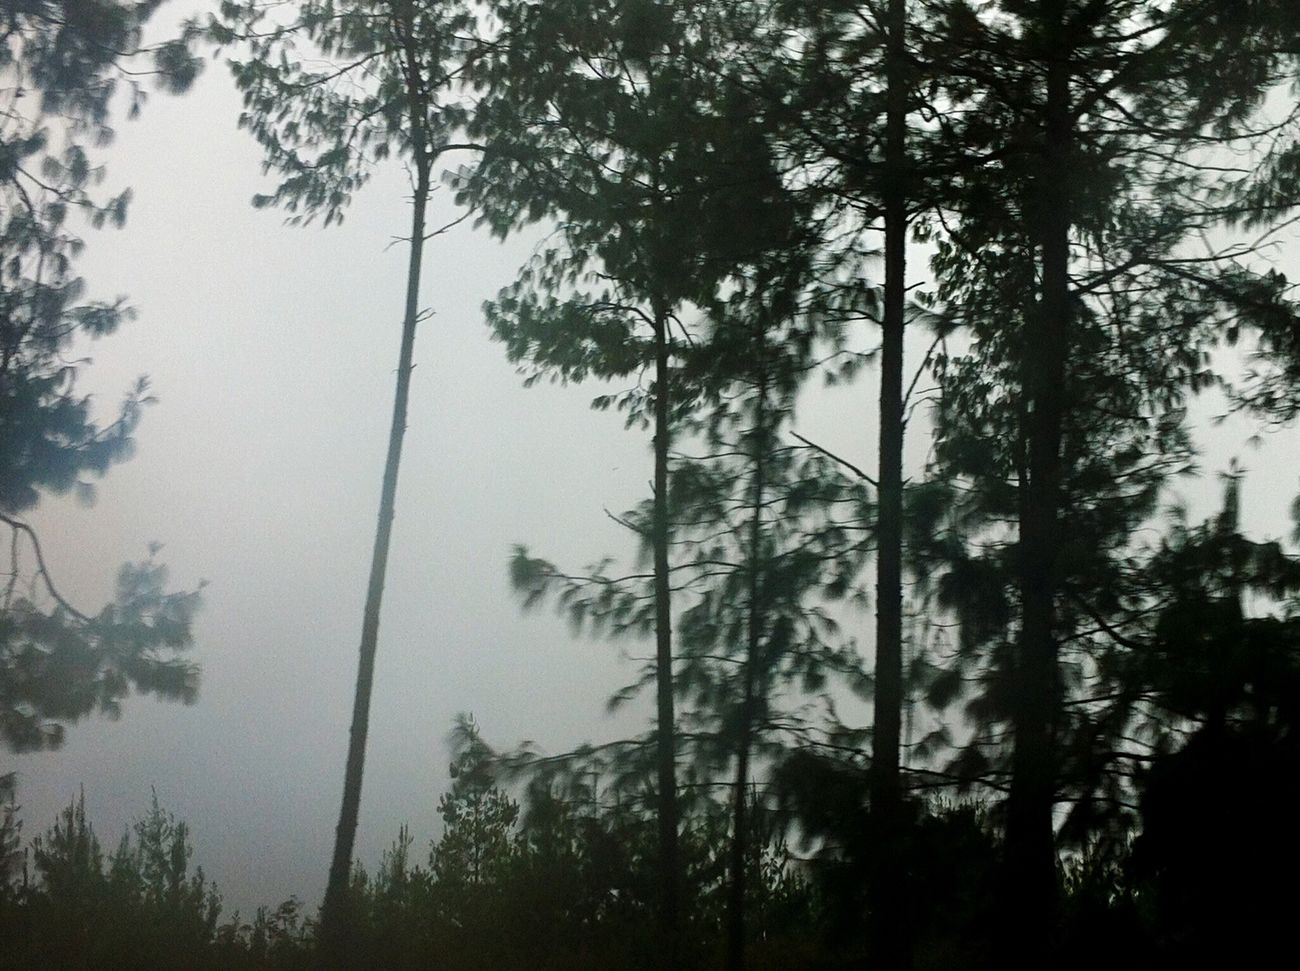 Forest Trees Nature Low Angle View Beauty In Nature Tranquility No People Scenics Outdoors Green Roadtrip Gray Day. Adventure Moments Lucky Shot Casualphotography Just Taking Pictures Amateurphotography Amazing Tree Rural Scene Little Foggy Foggy Growth